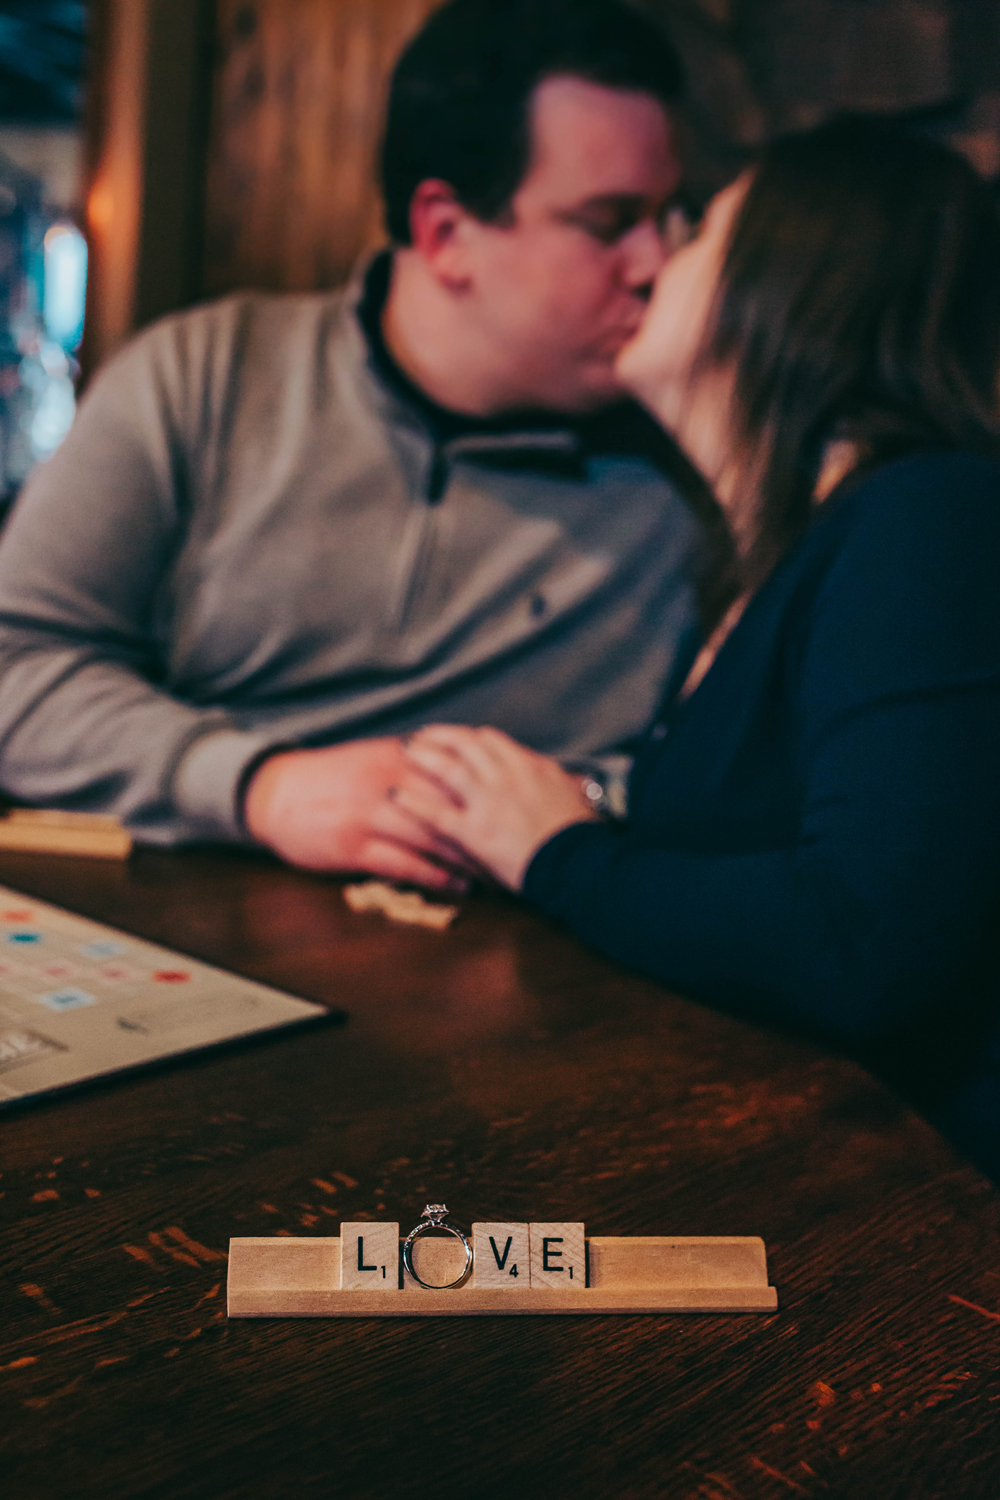 Love with Ring on a Scrabble Board for a Lifestyle Engagement Session with the couple in the background.